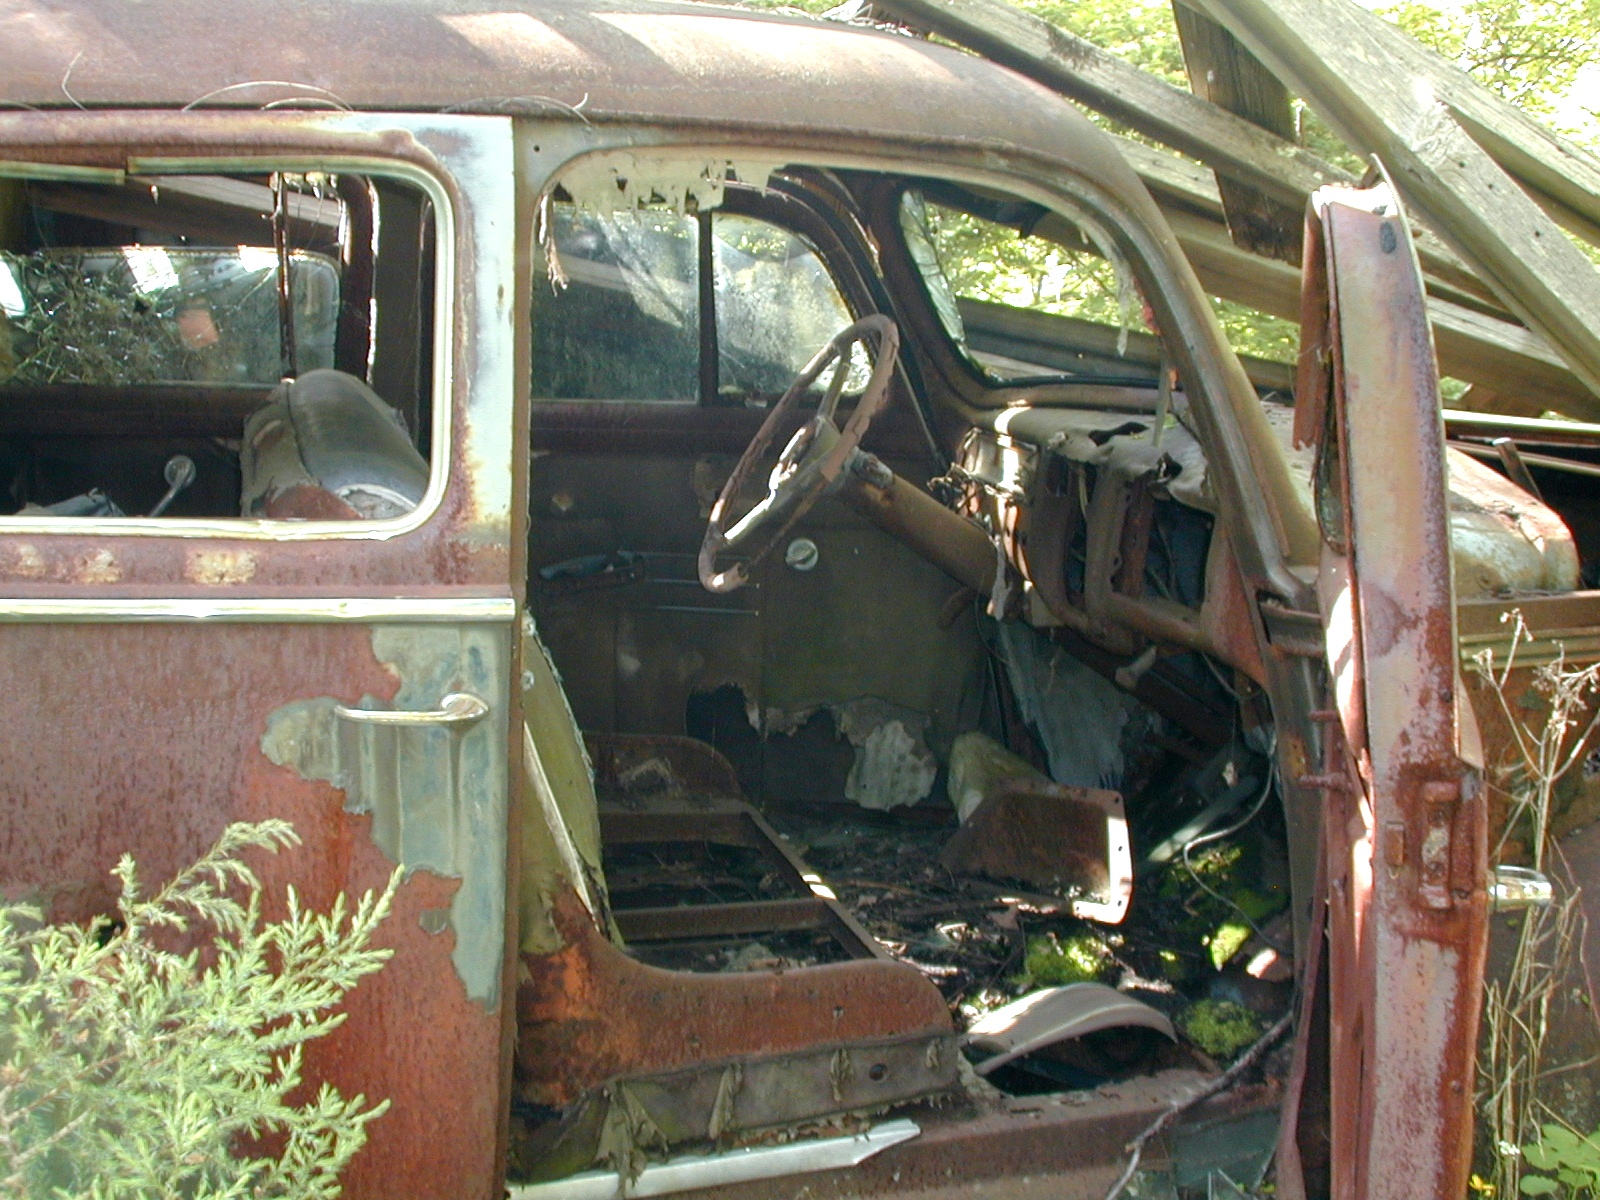 Closer side view of the old car